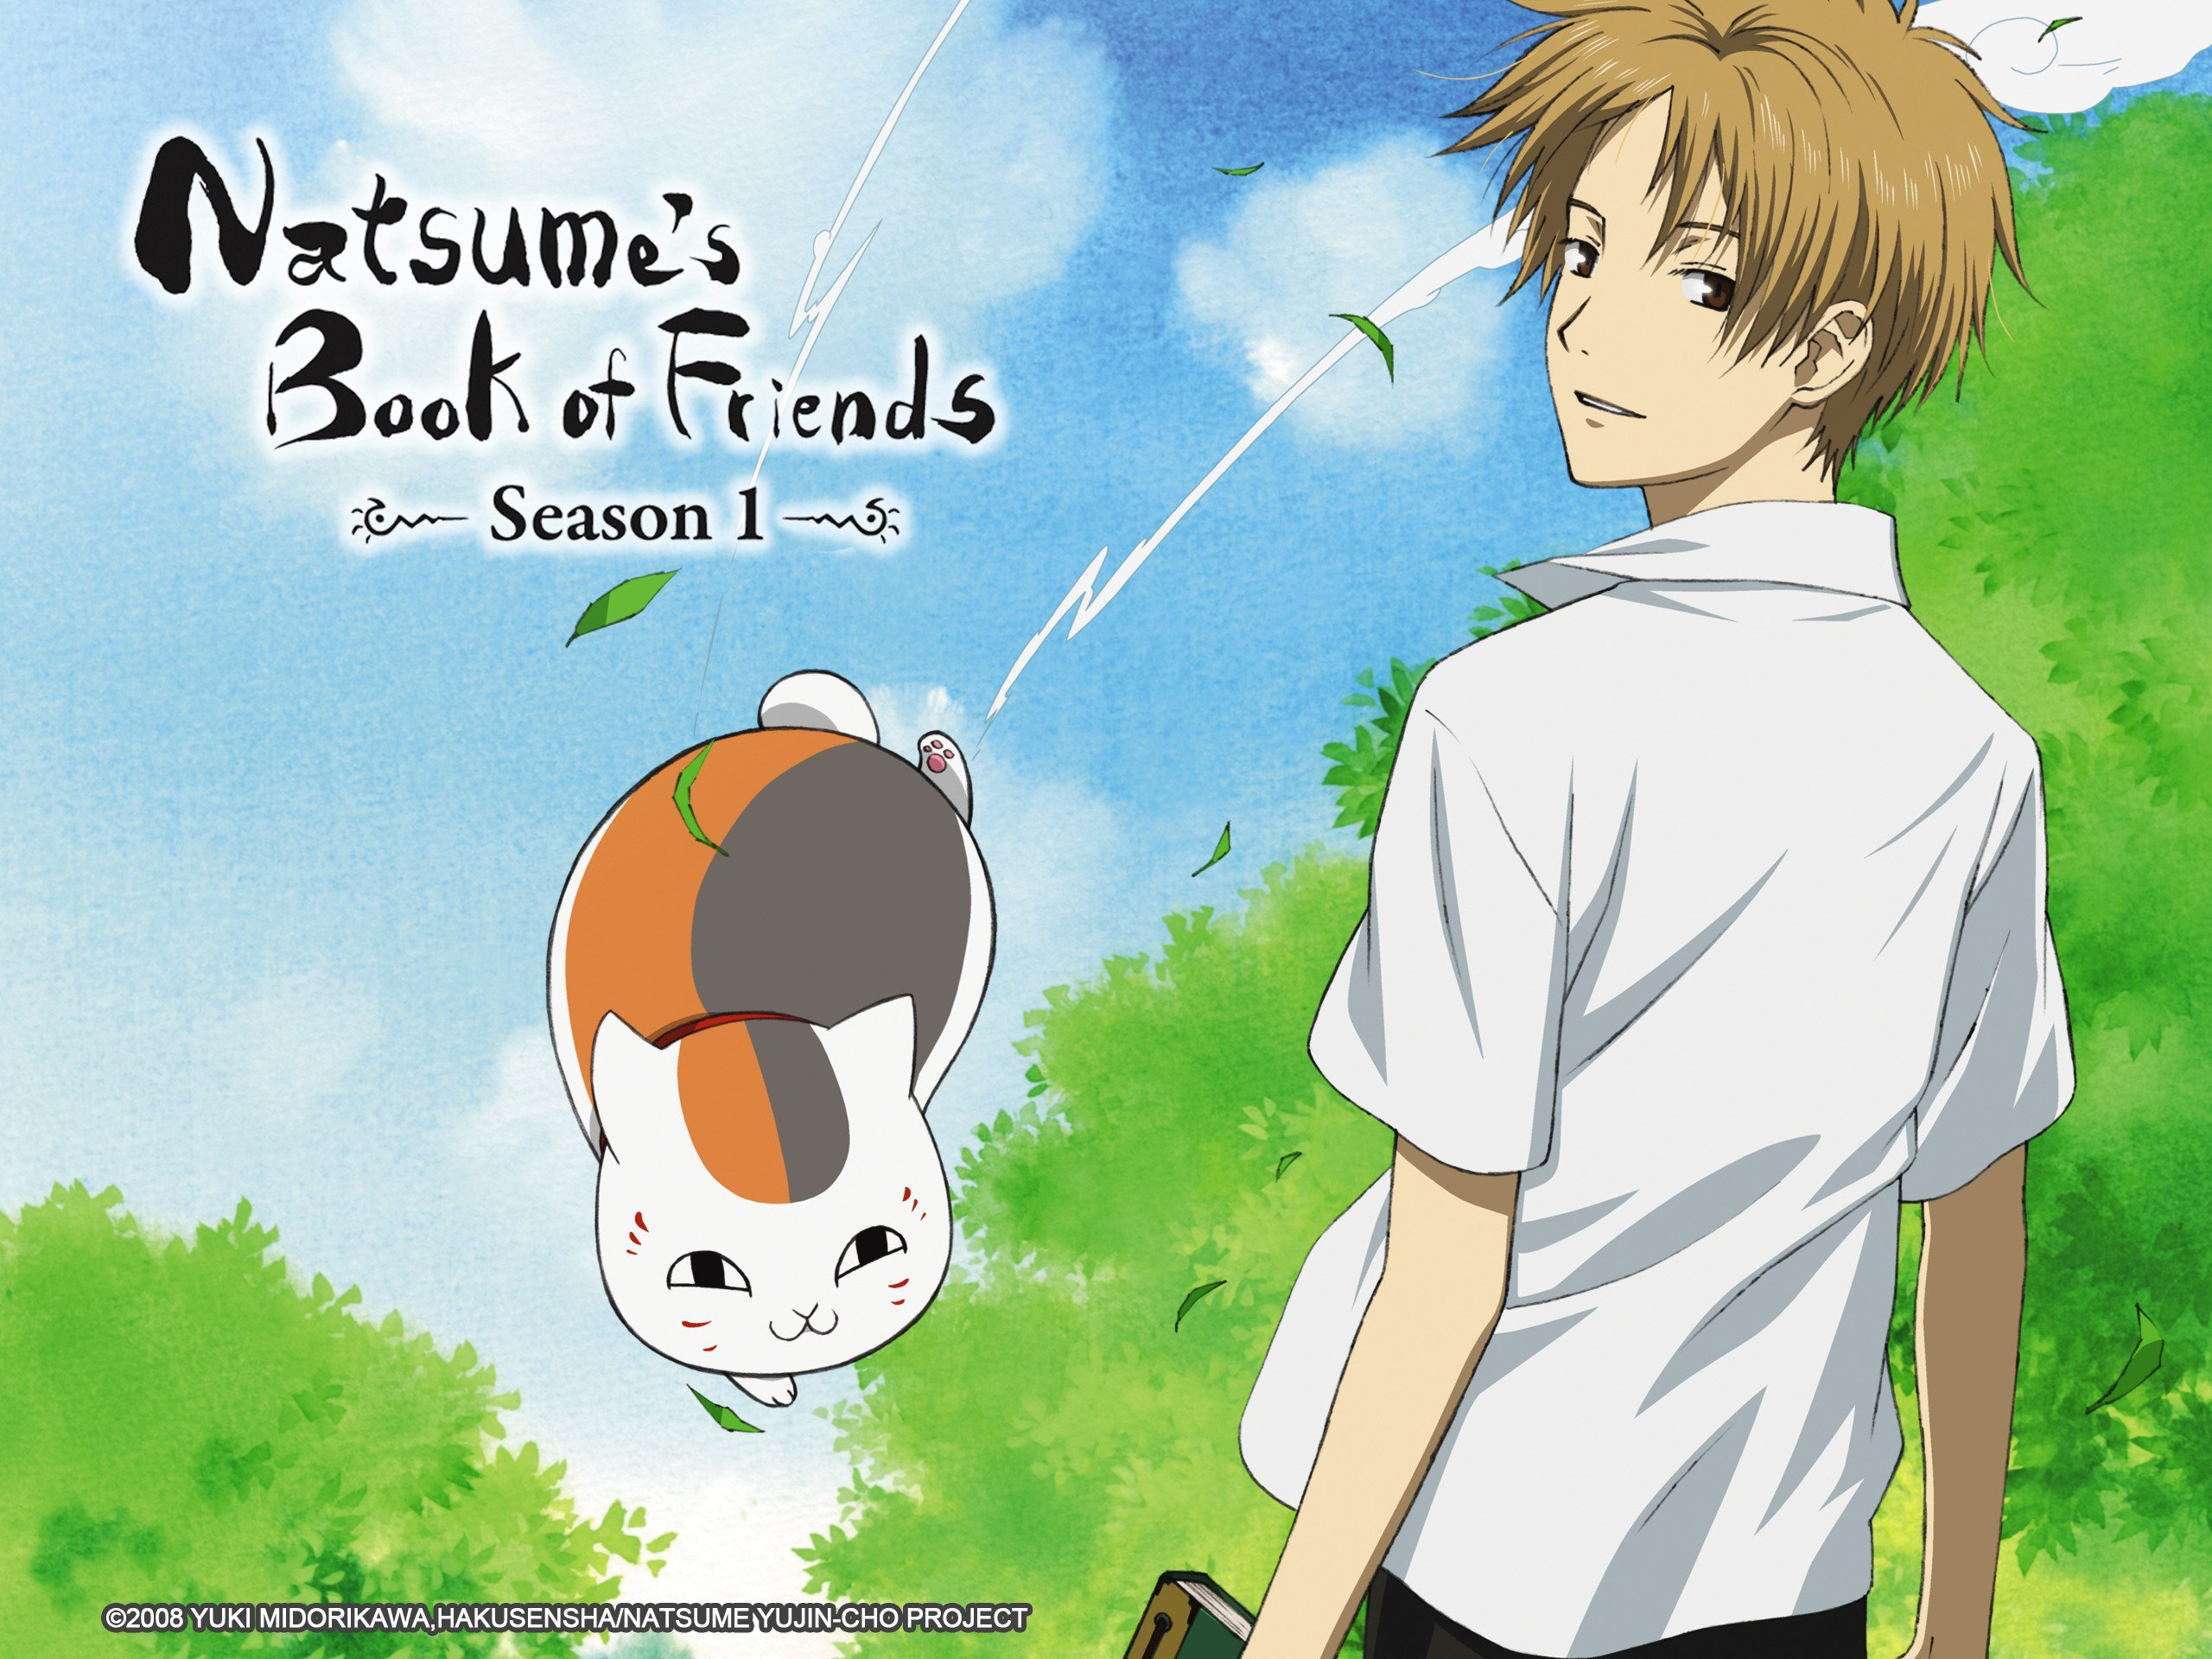 Amazon.com: Watch Natsume's Book of Friends - Season 1 (English ...